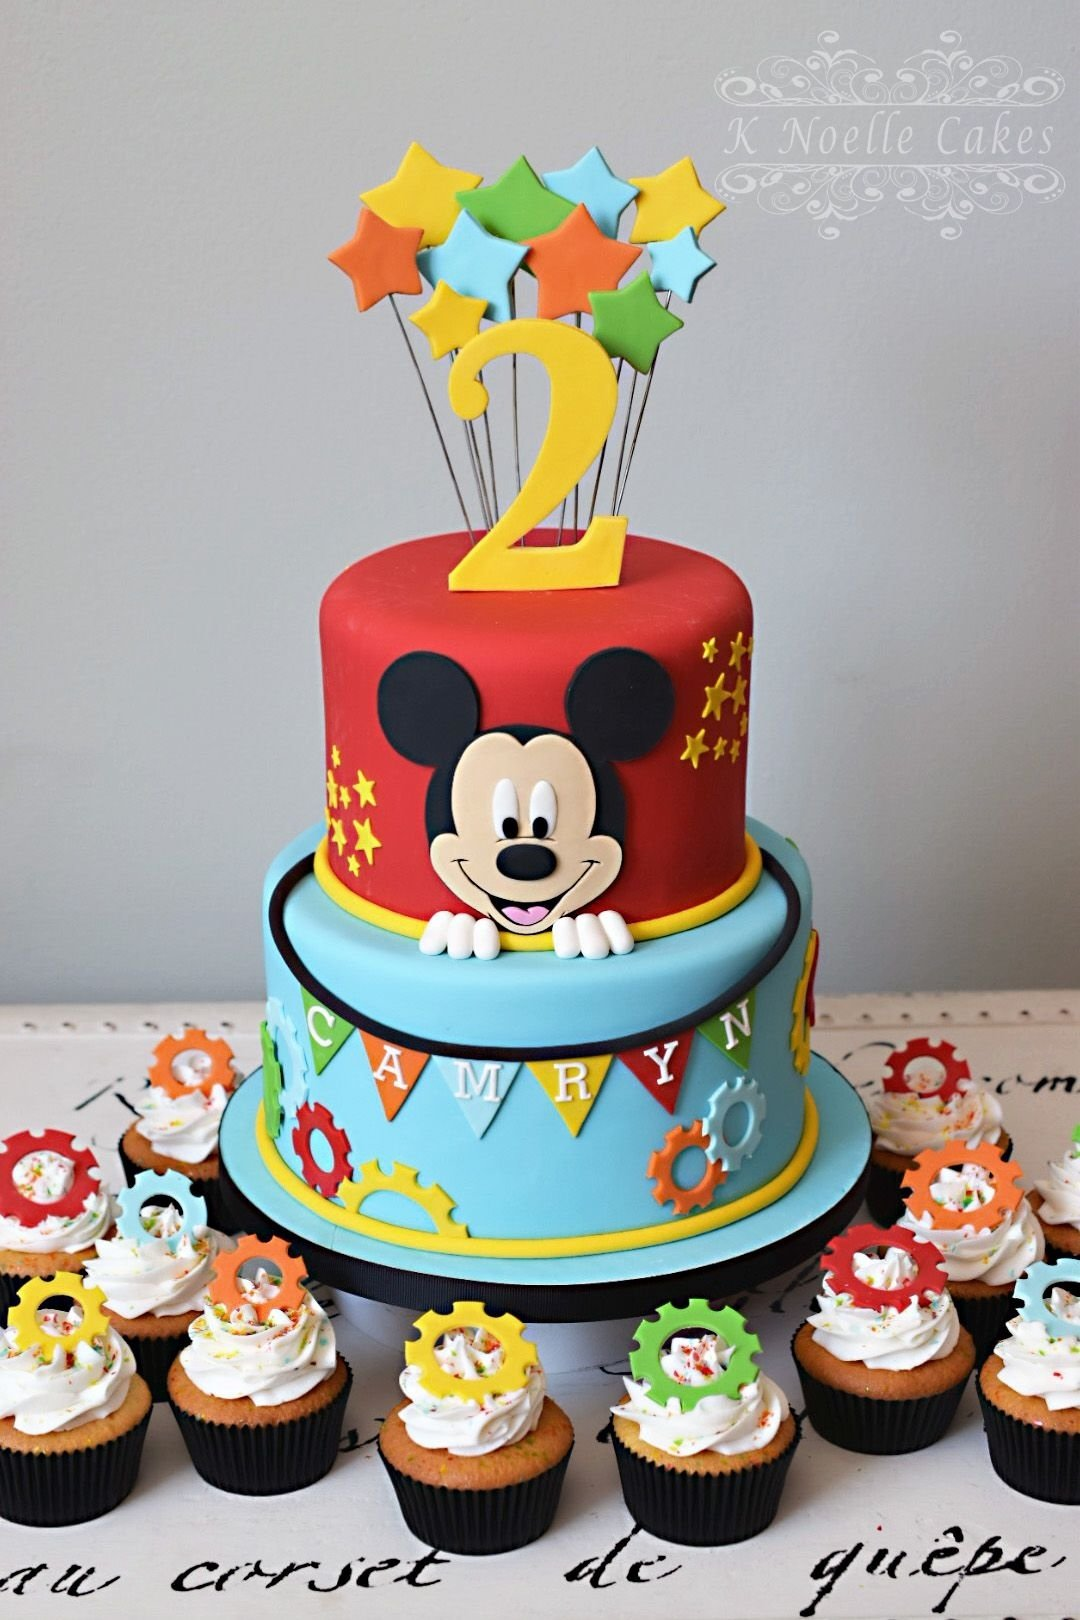 mickey mouse clubhouse theme cakek noelle cakes | cakes by: k